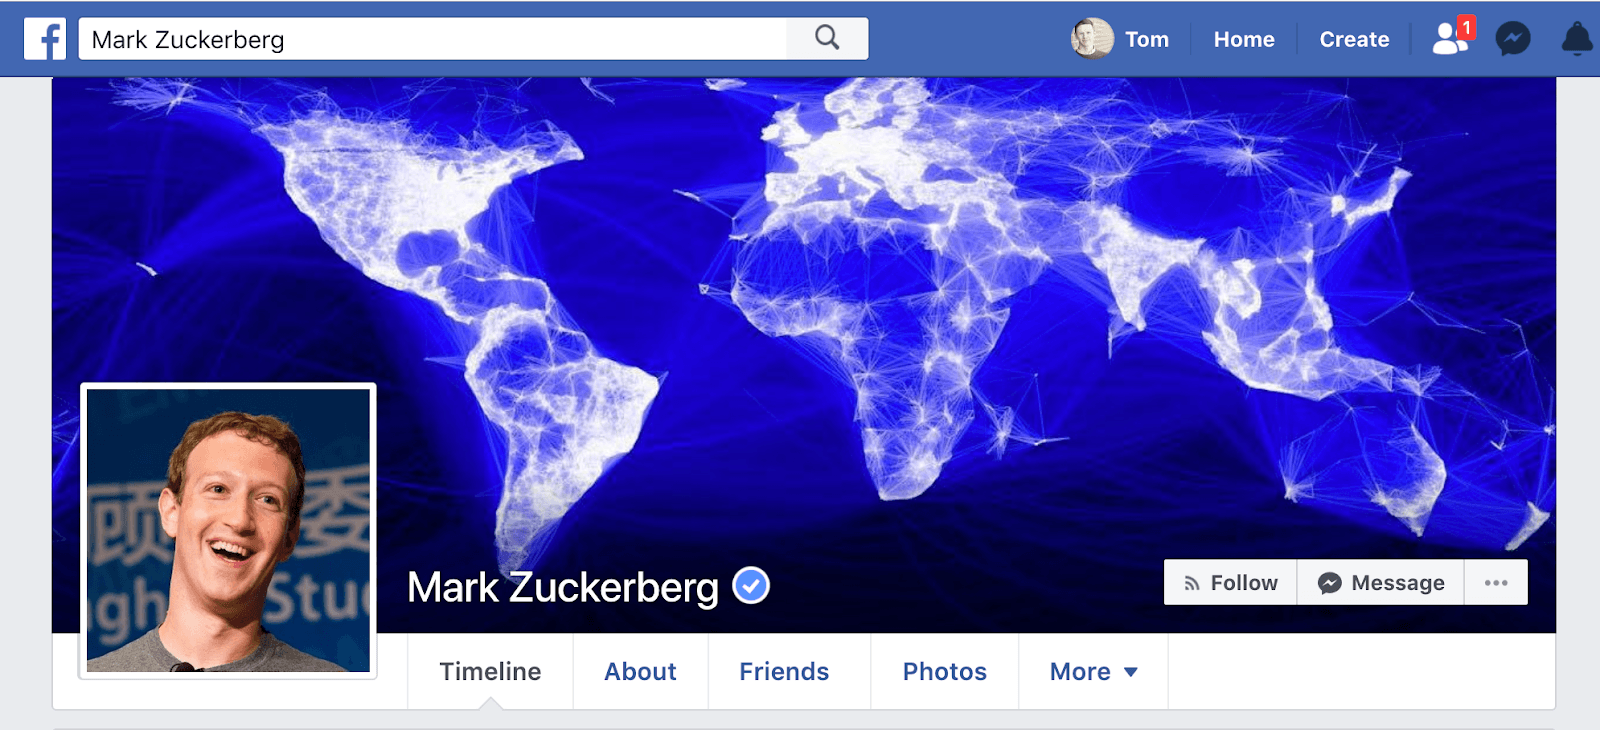 Mark Zuckerberg's Facebook Cover Photo